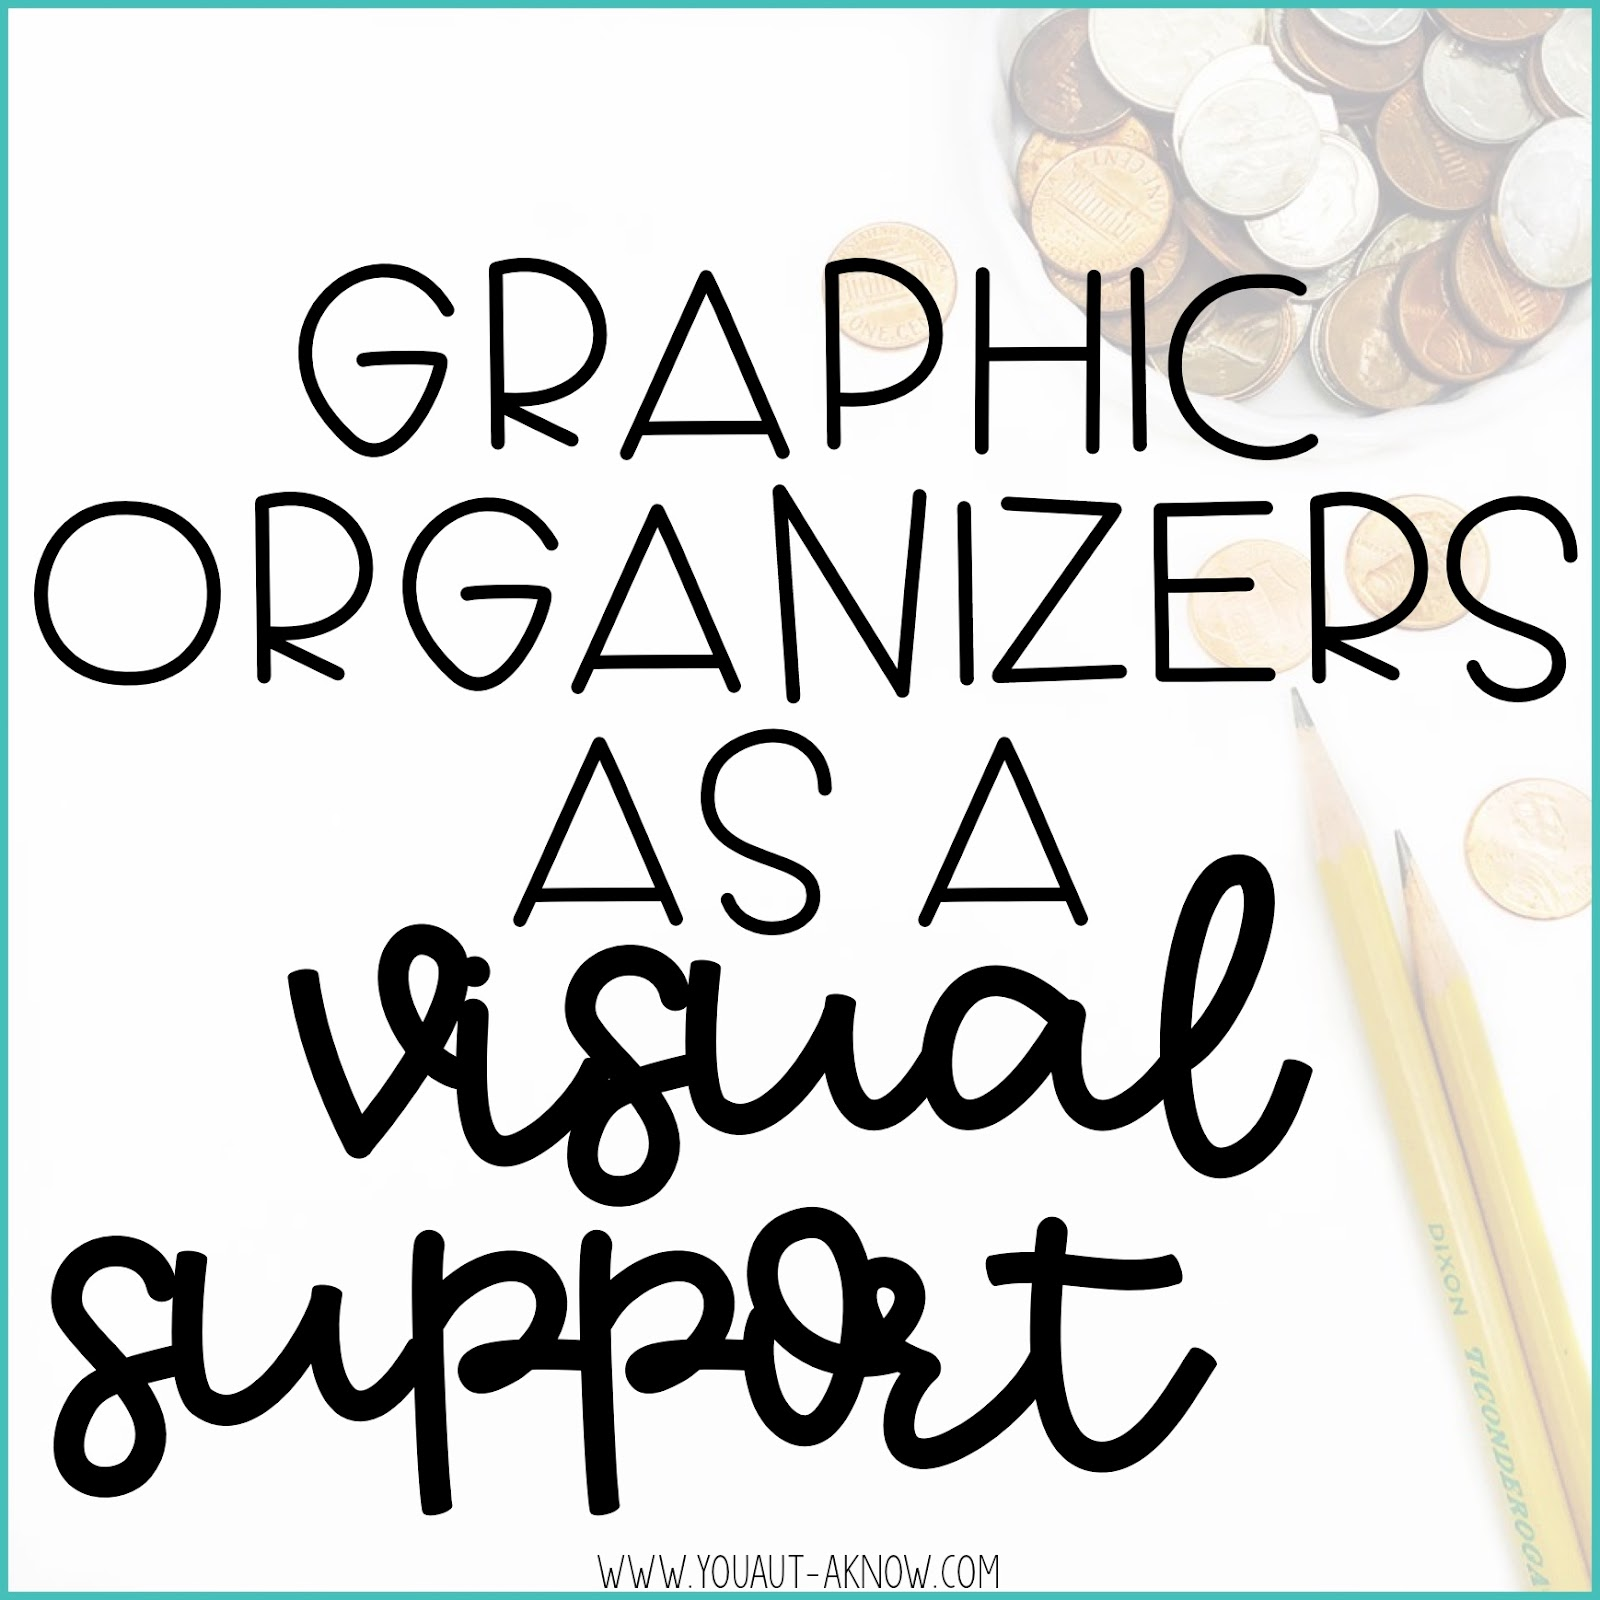 Graphic organizers provide excellent visual supports for so many students on the Autism Spectrum. Read about how I use graphic organizers to support behavior skills for my special education students.